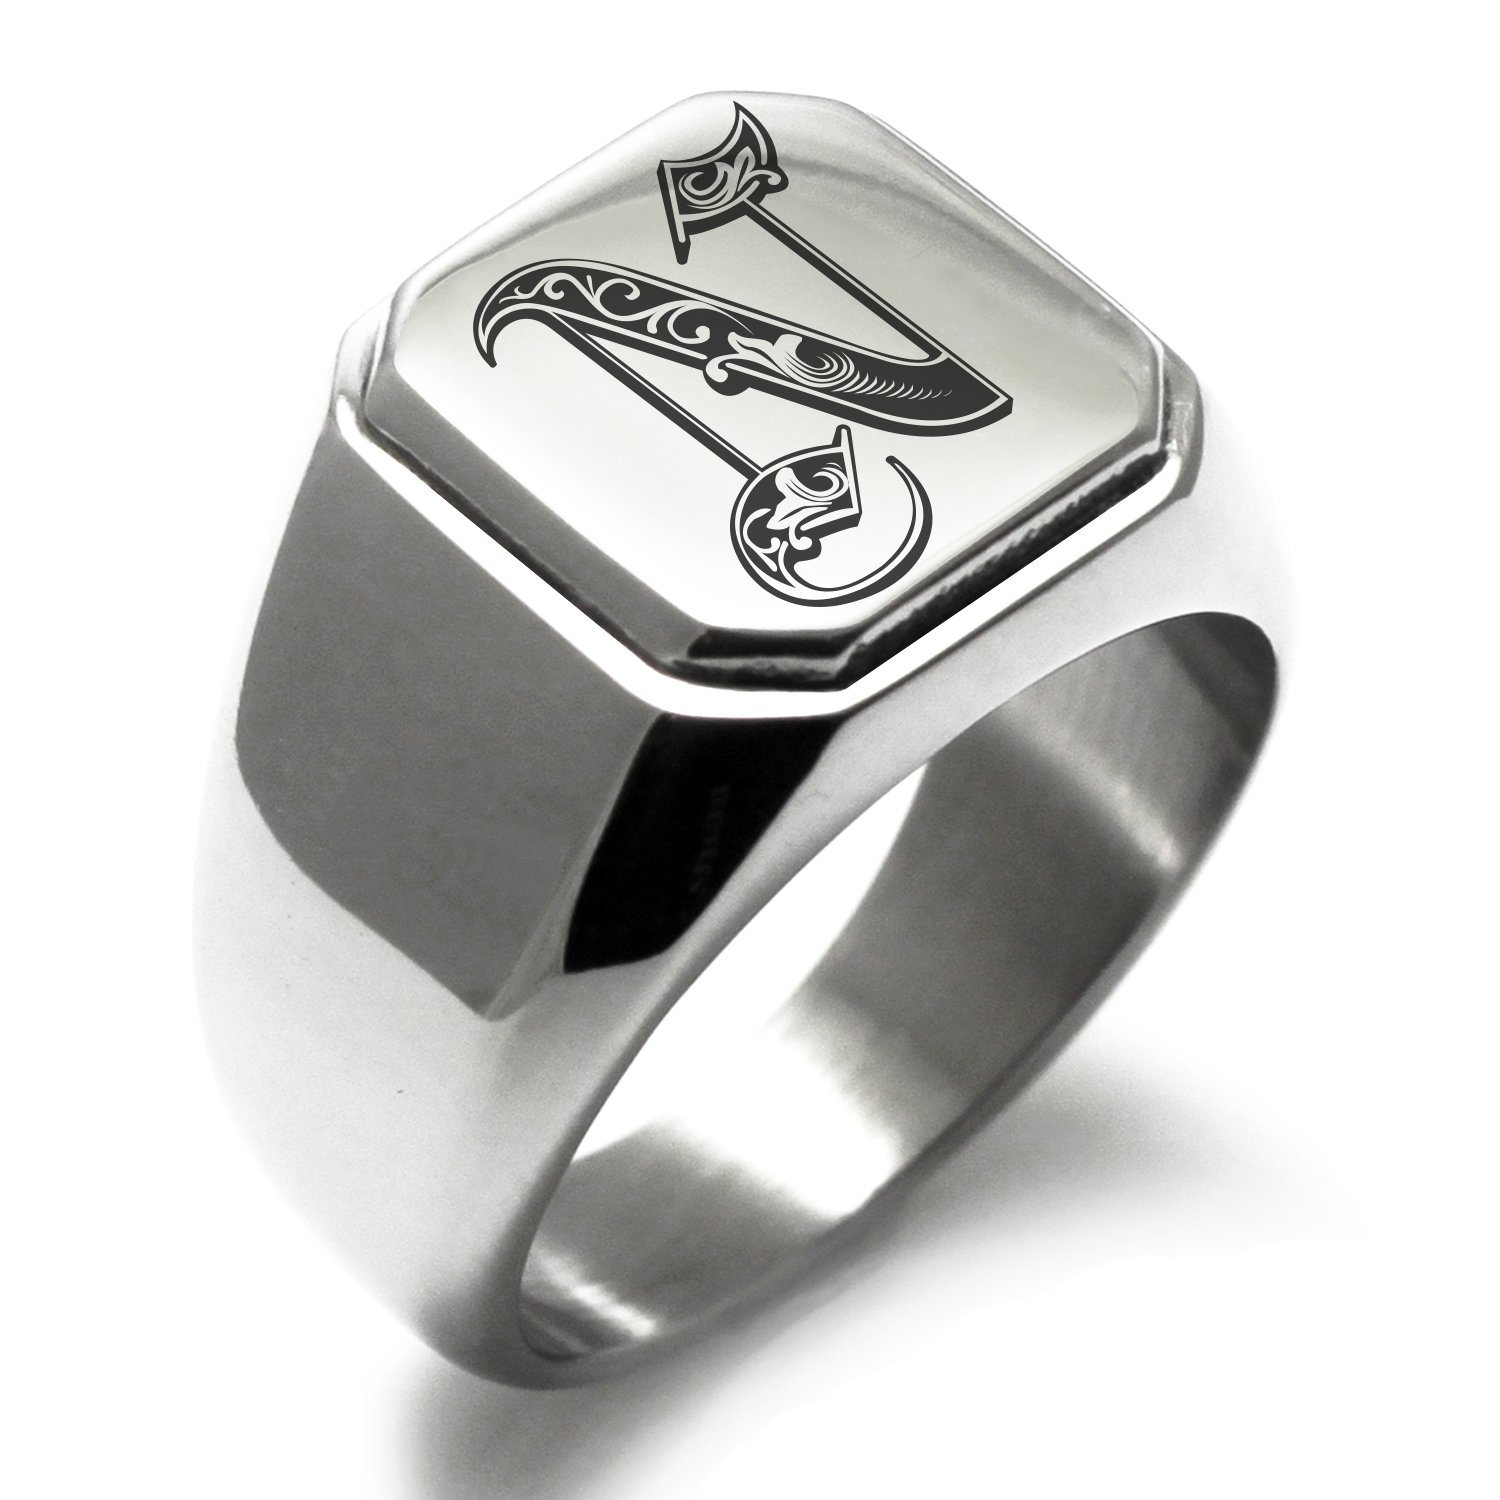 Stainless Steel Letter N Alphabet Initial Royal Monogram Engraved Square Flat Top Biker Style Polished Ring